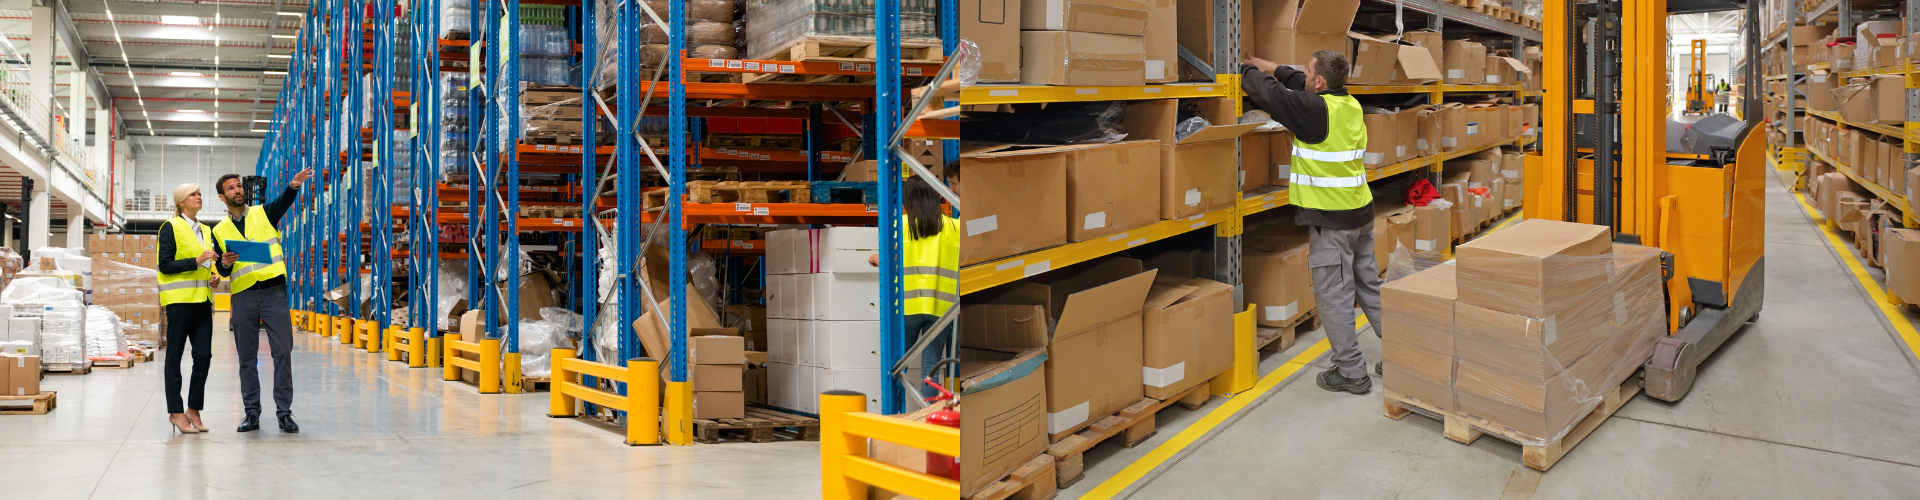 pick and pack, pick pack and ship, picking and packing, pick pack ship, ecommerce order, packaging suppliers uk, picking pack, warehousing packing, 3pl, order fulfilment, managing inventory, uk warehousing, 3pl suppliers, 3pl logistics services, fulfillment in ecommerce, 3pl warehouse companies